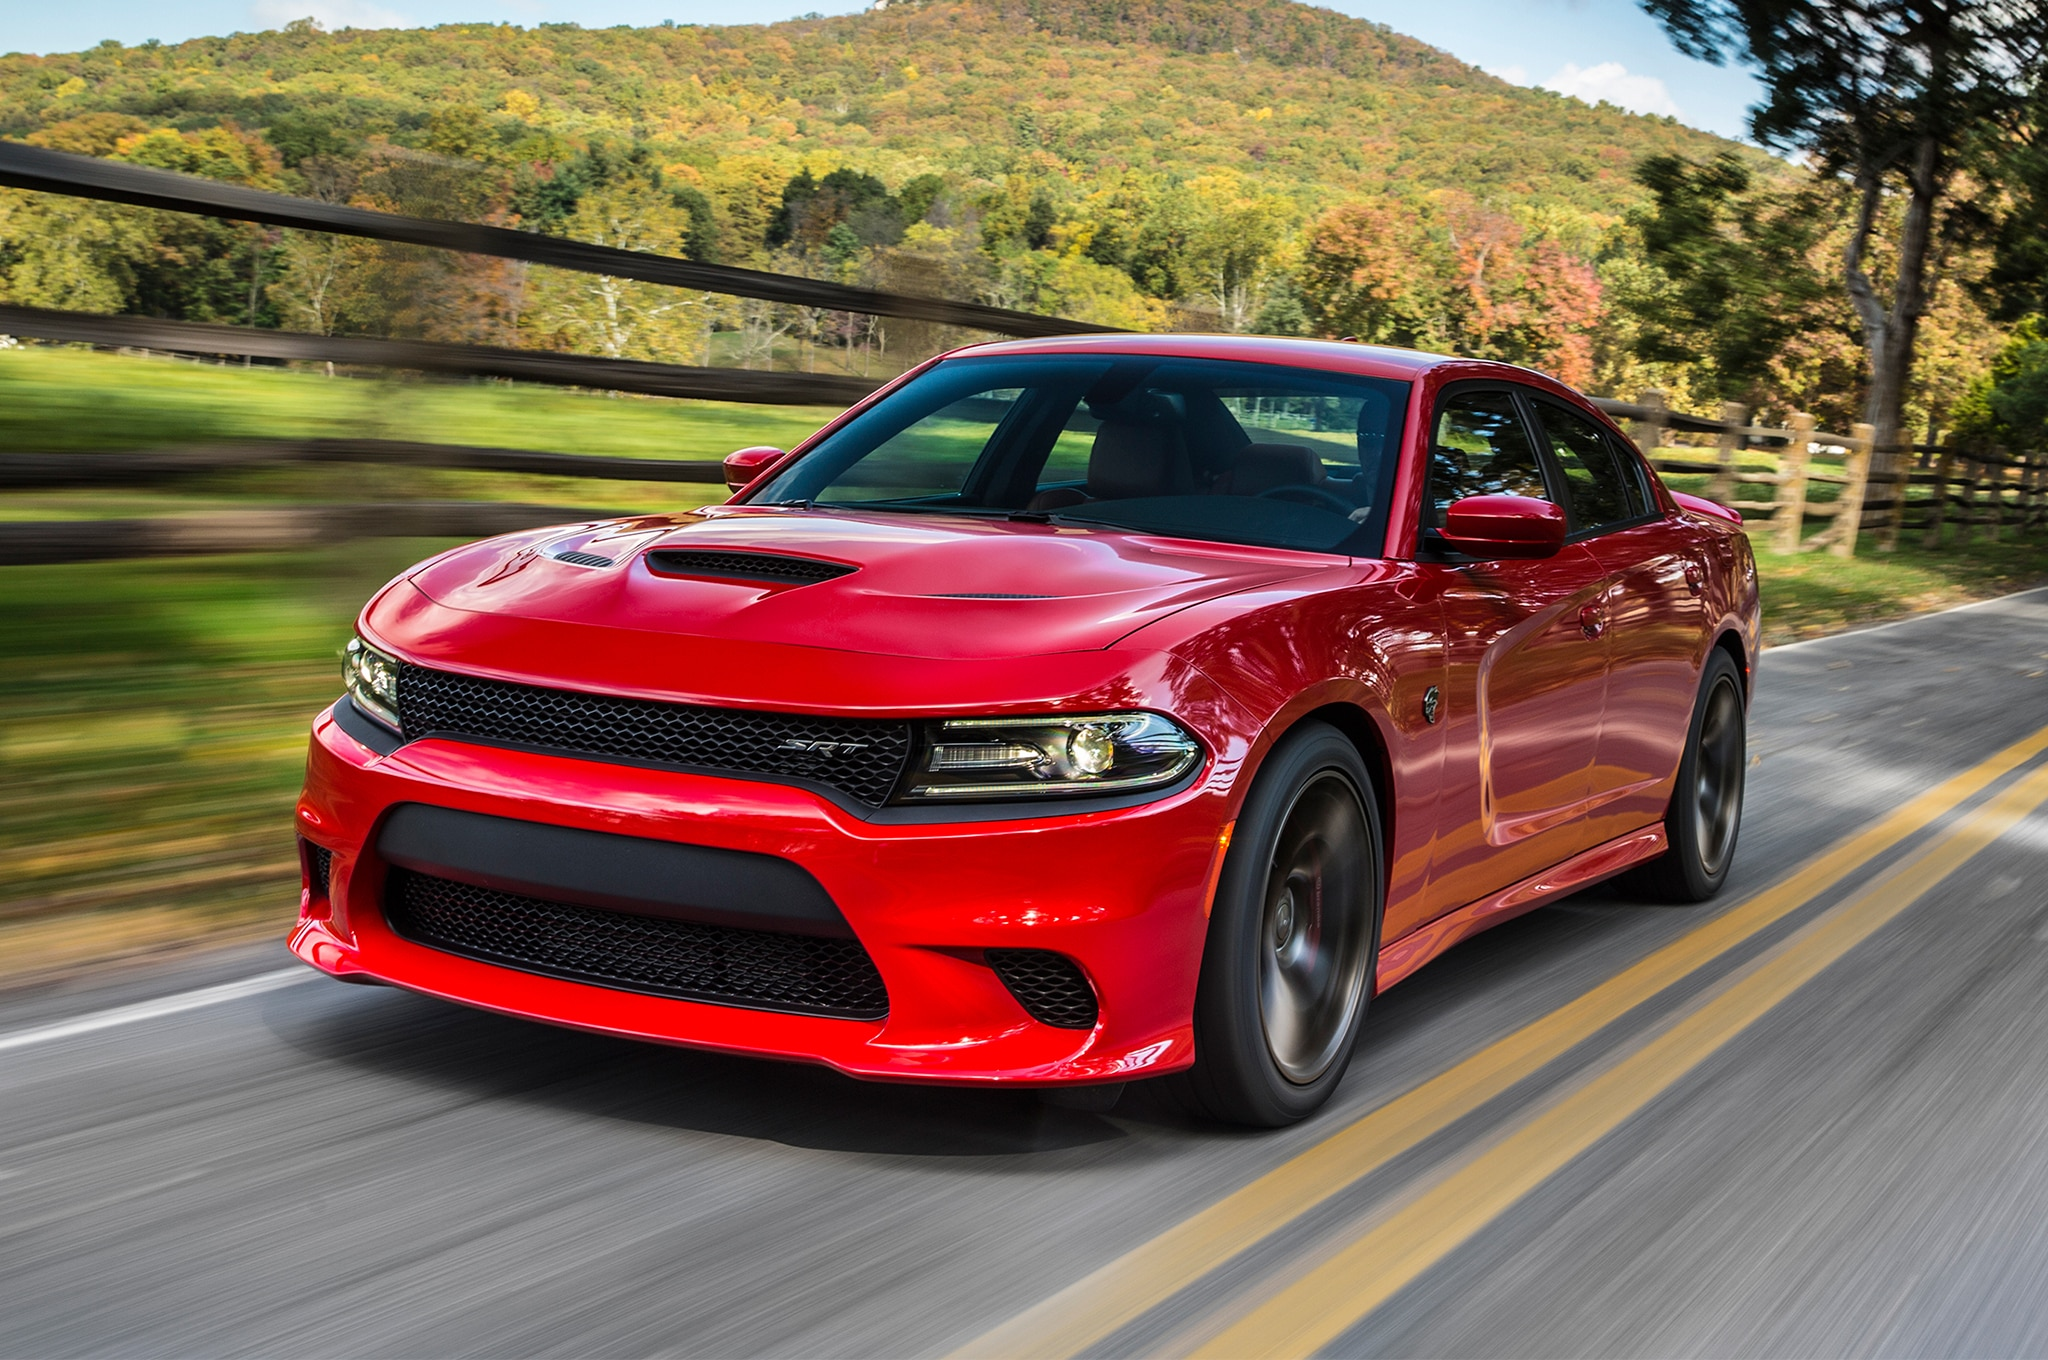 2019 Dodge Charger SRT Hellcat Receives New Grille